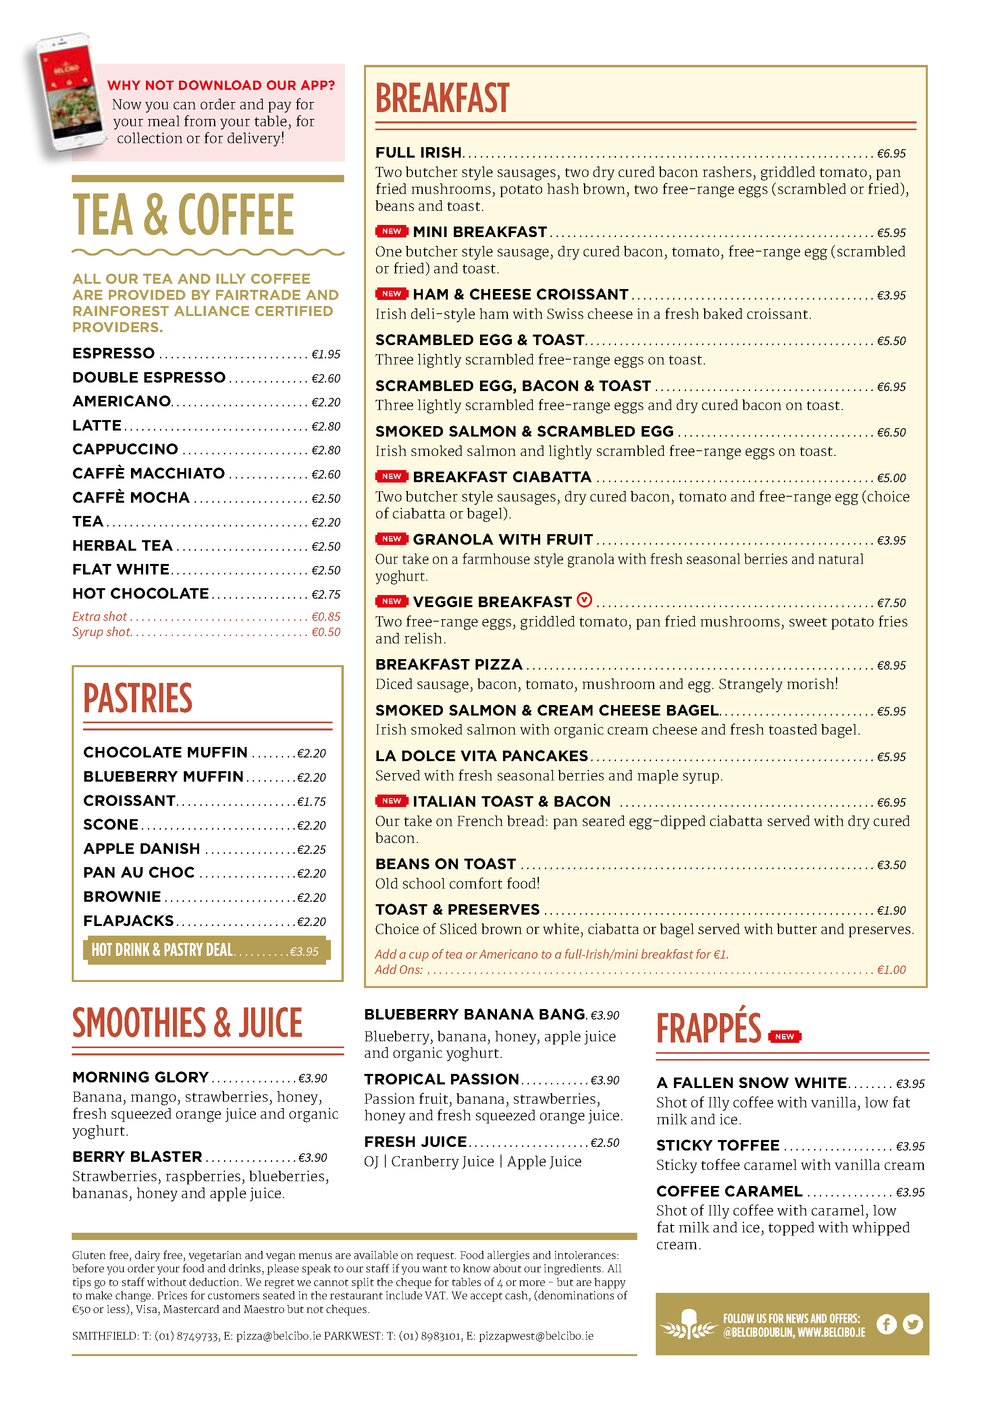 bel-cibo-BREAKFAST-SF-03112015_Page_2.png